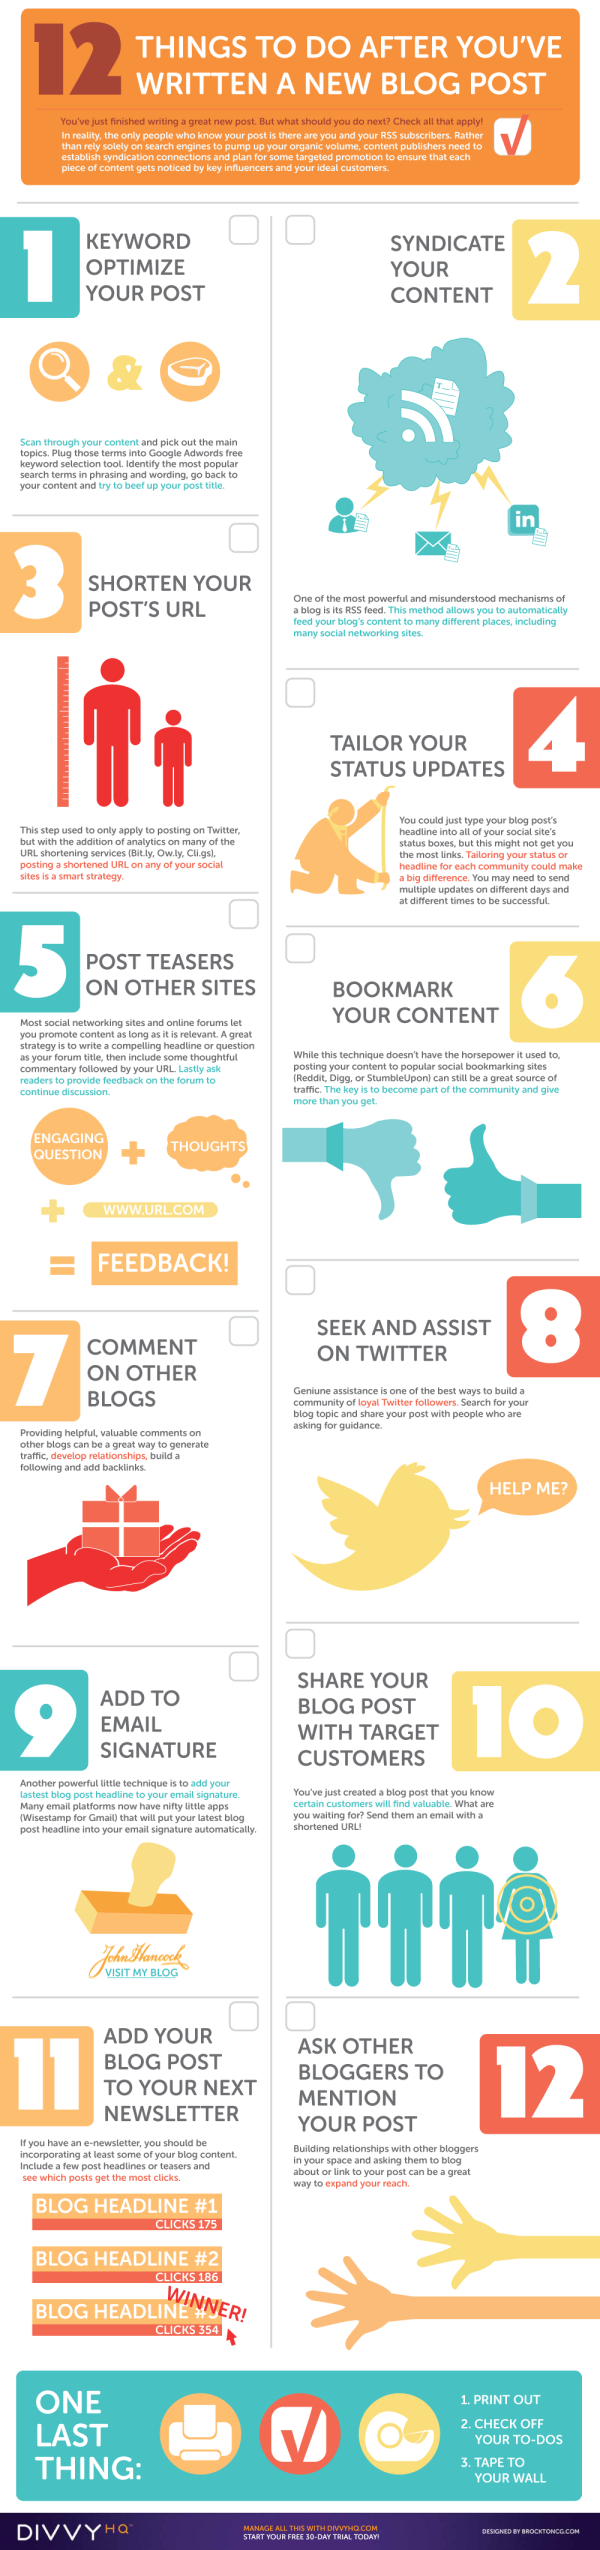 12 things to do after you've written a new Blog post #infographic